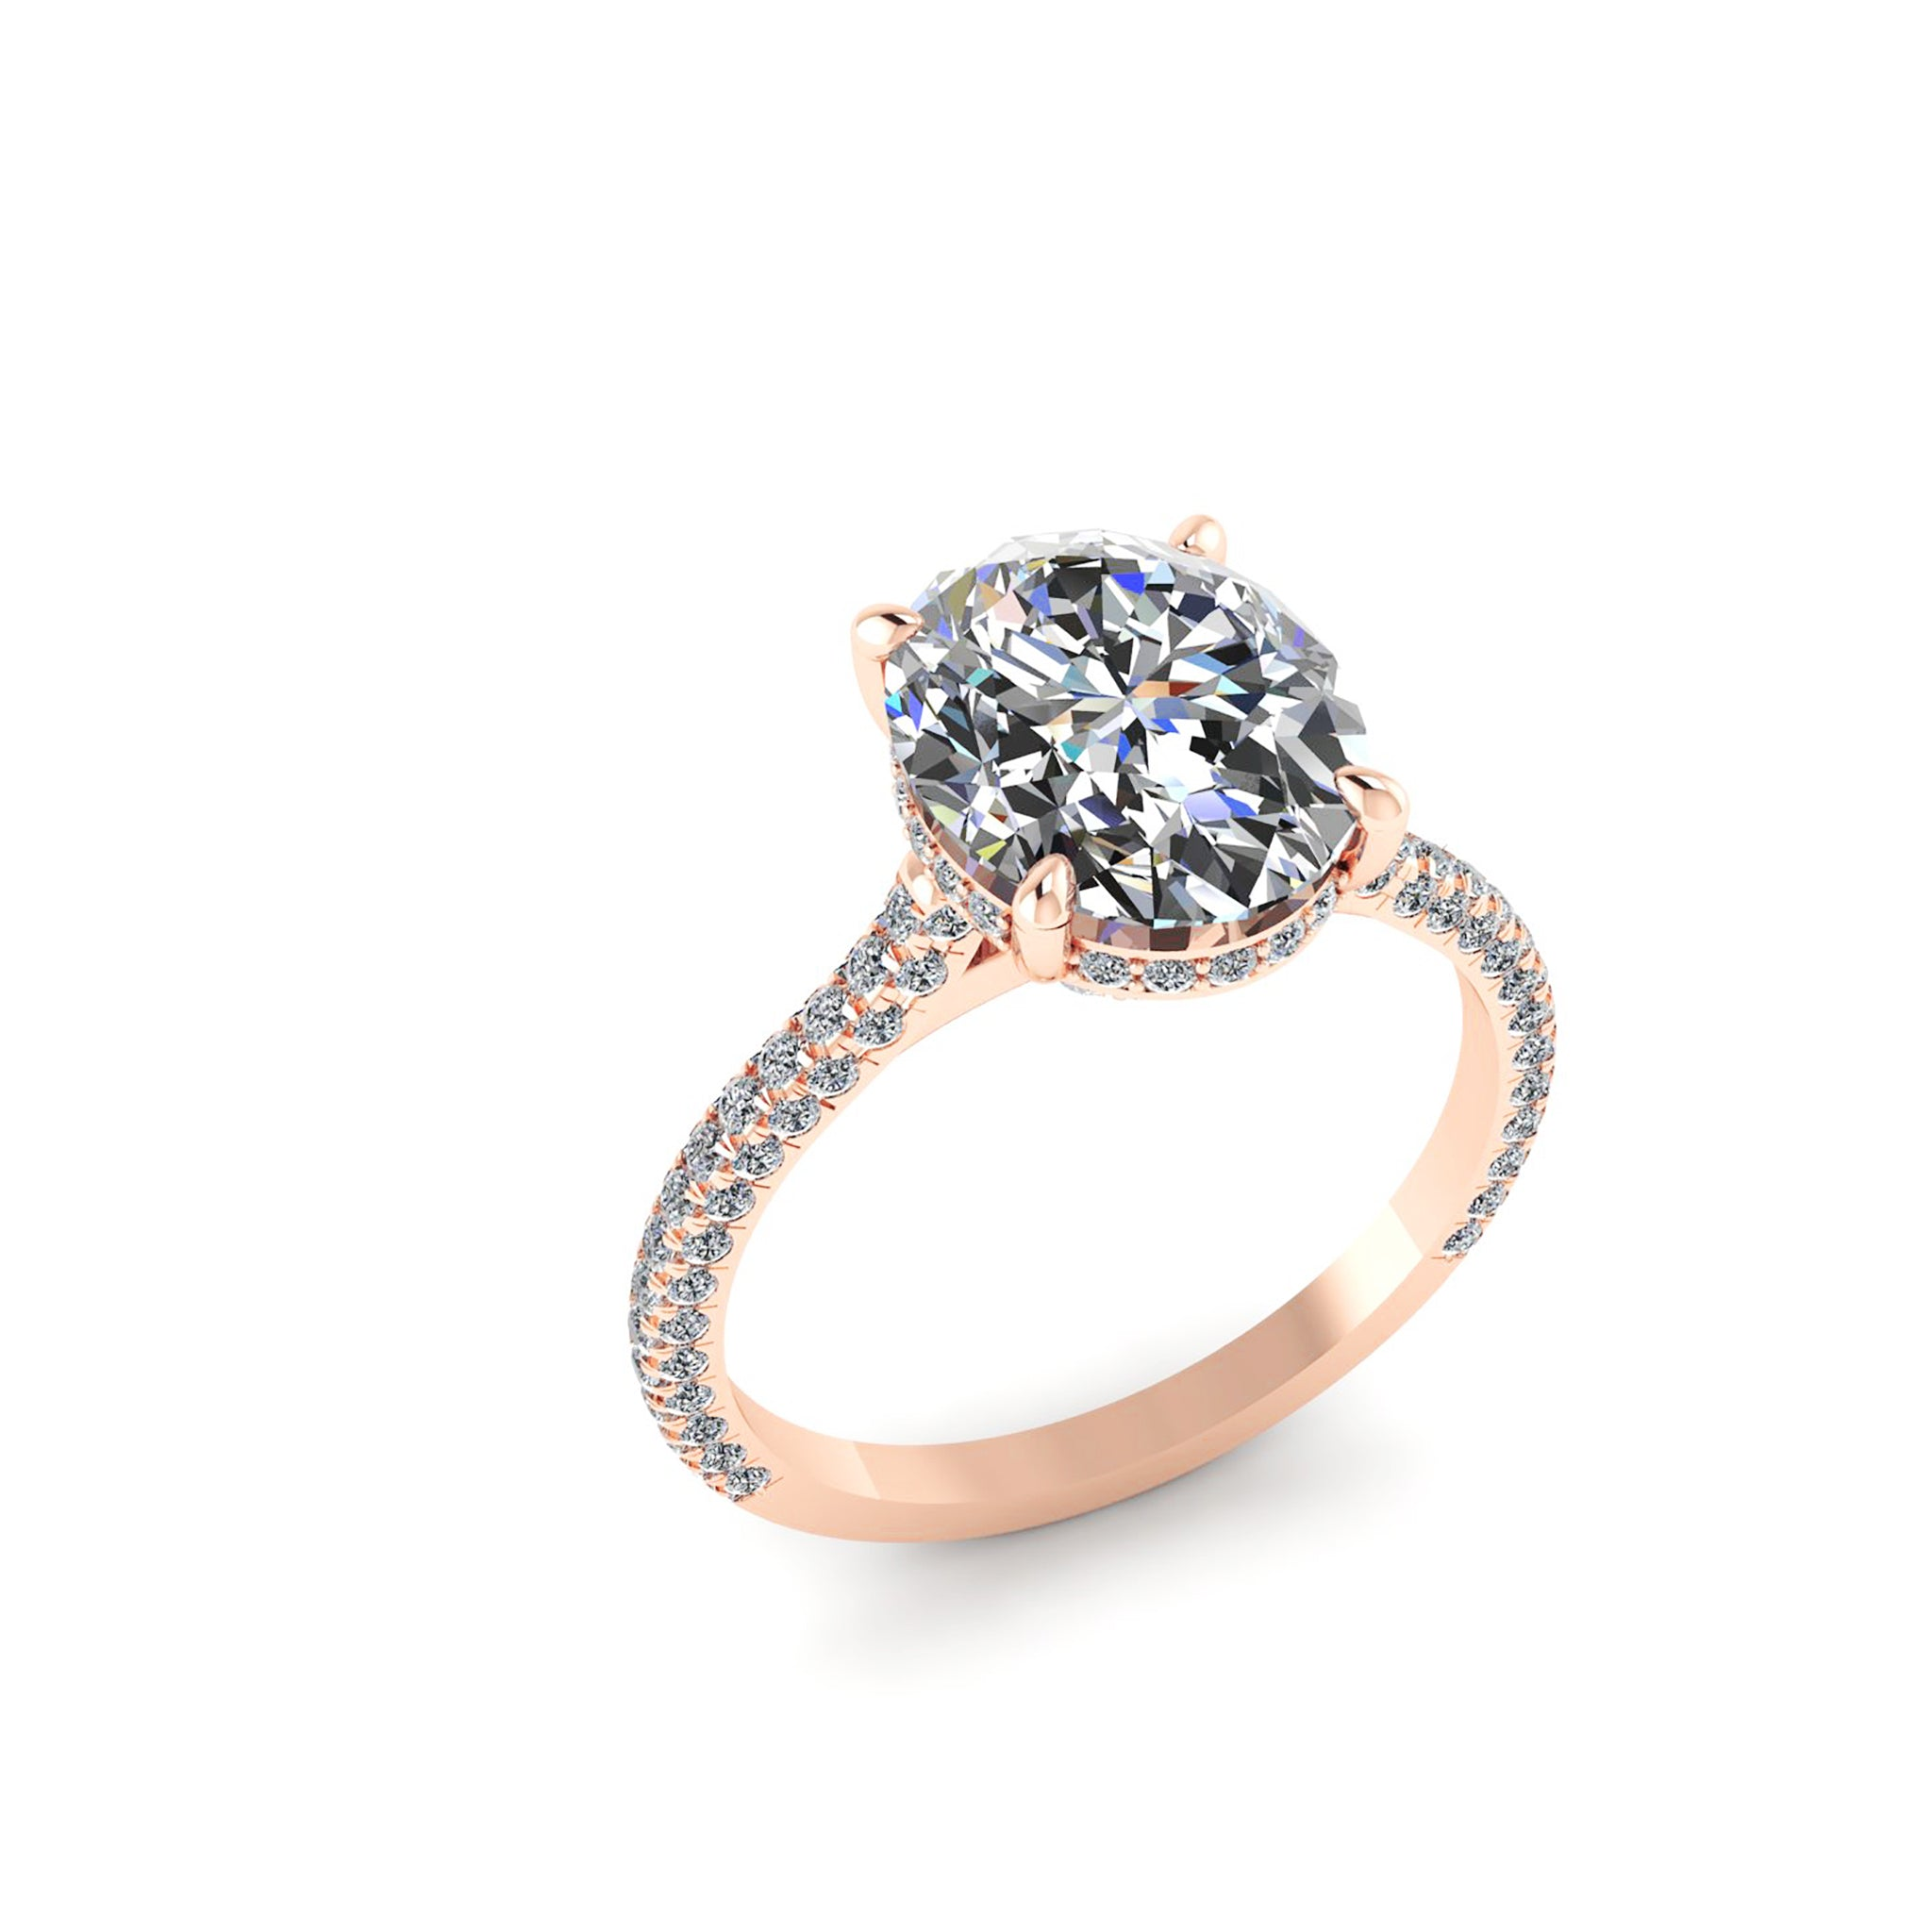 SIGNATURE OVAL with PAVÉ BAND ENGAGEMENT RING